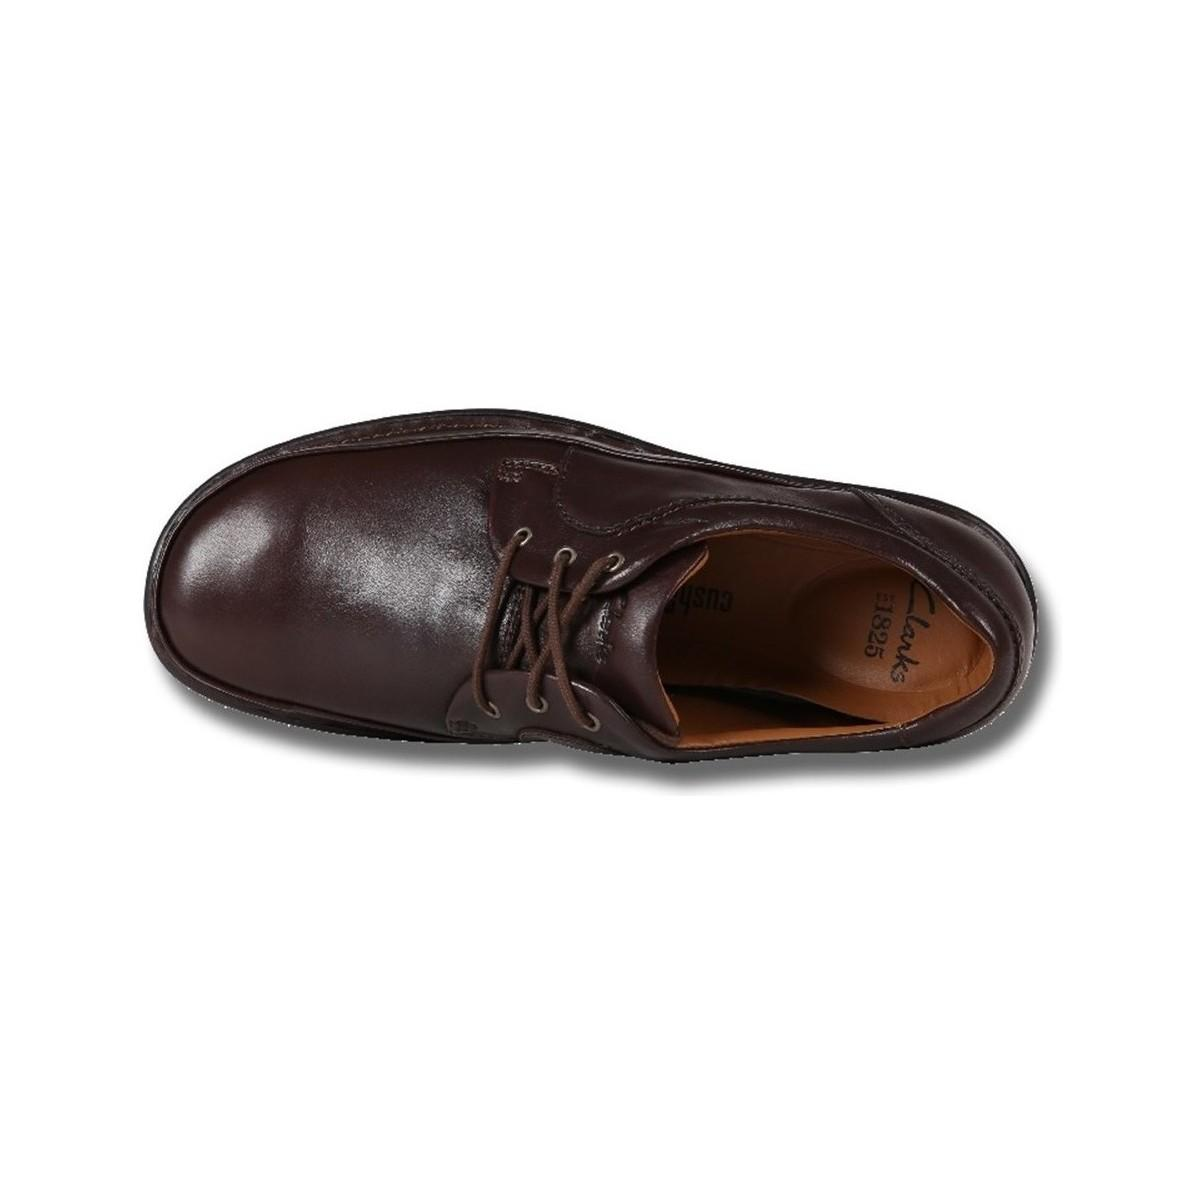 Clarks Butleigh Edge Walnut Leather Men's Casual Shoes In Brown for Men